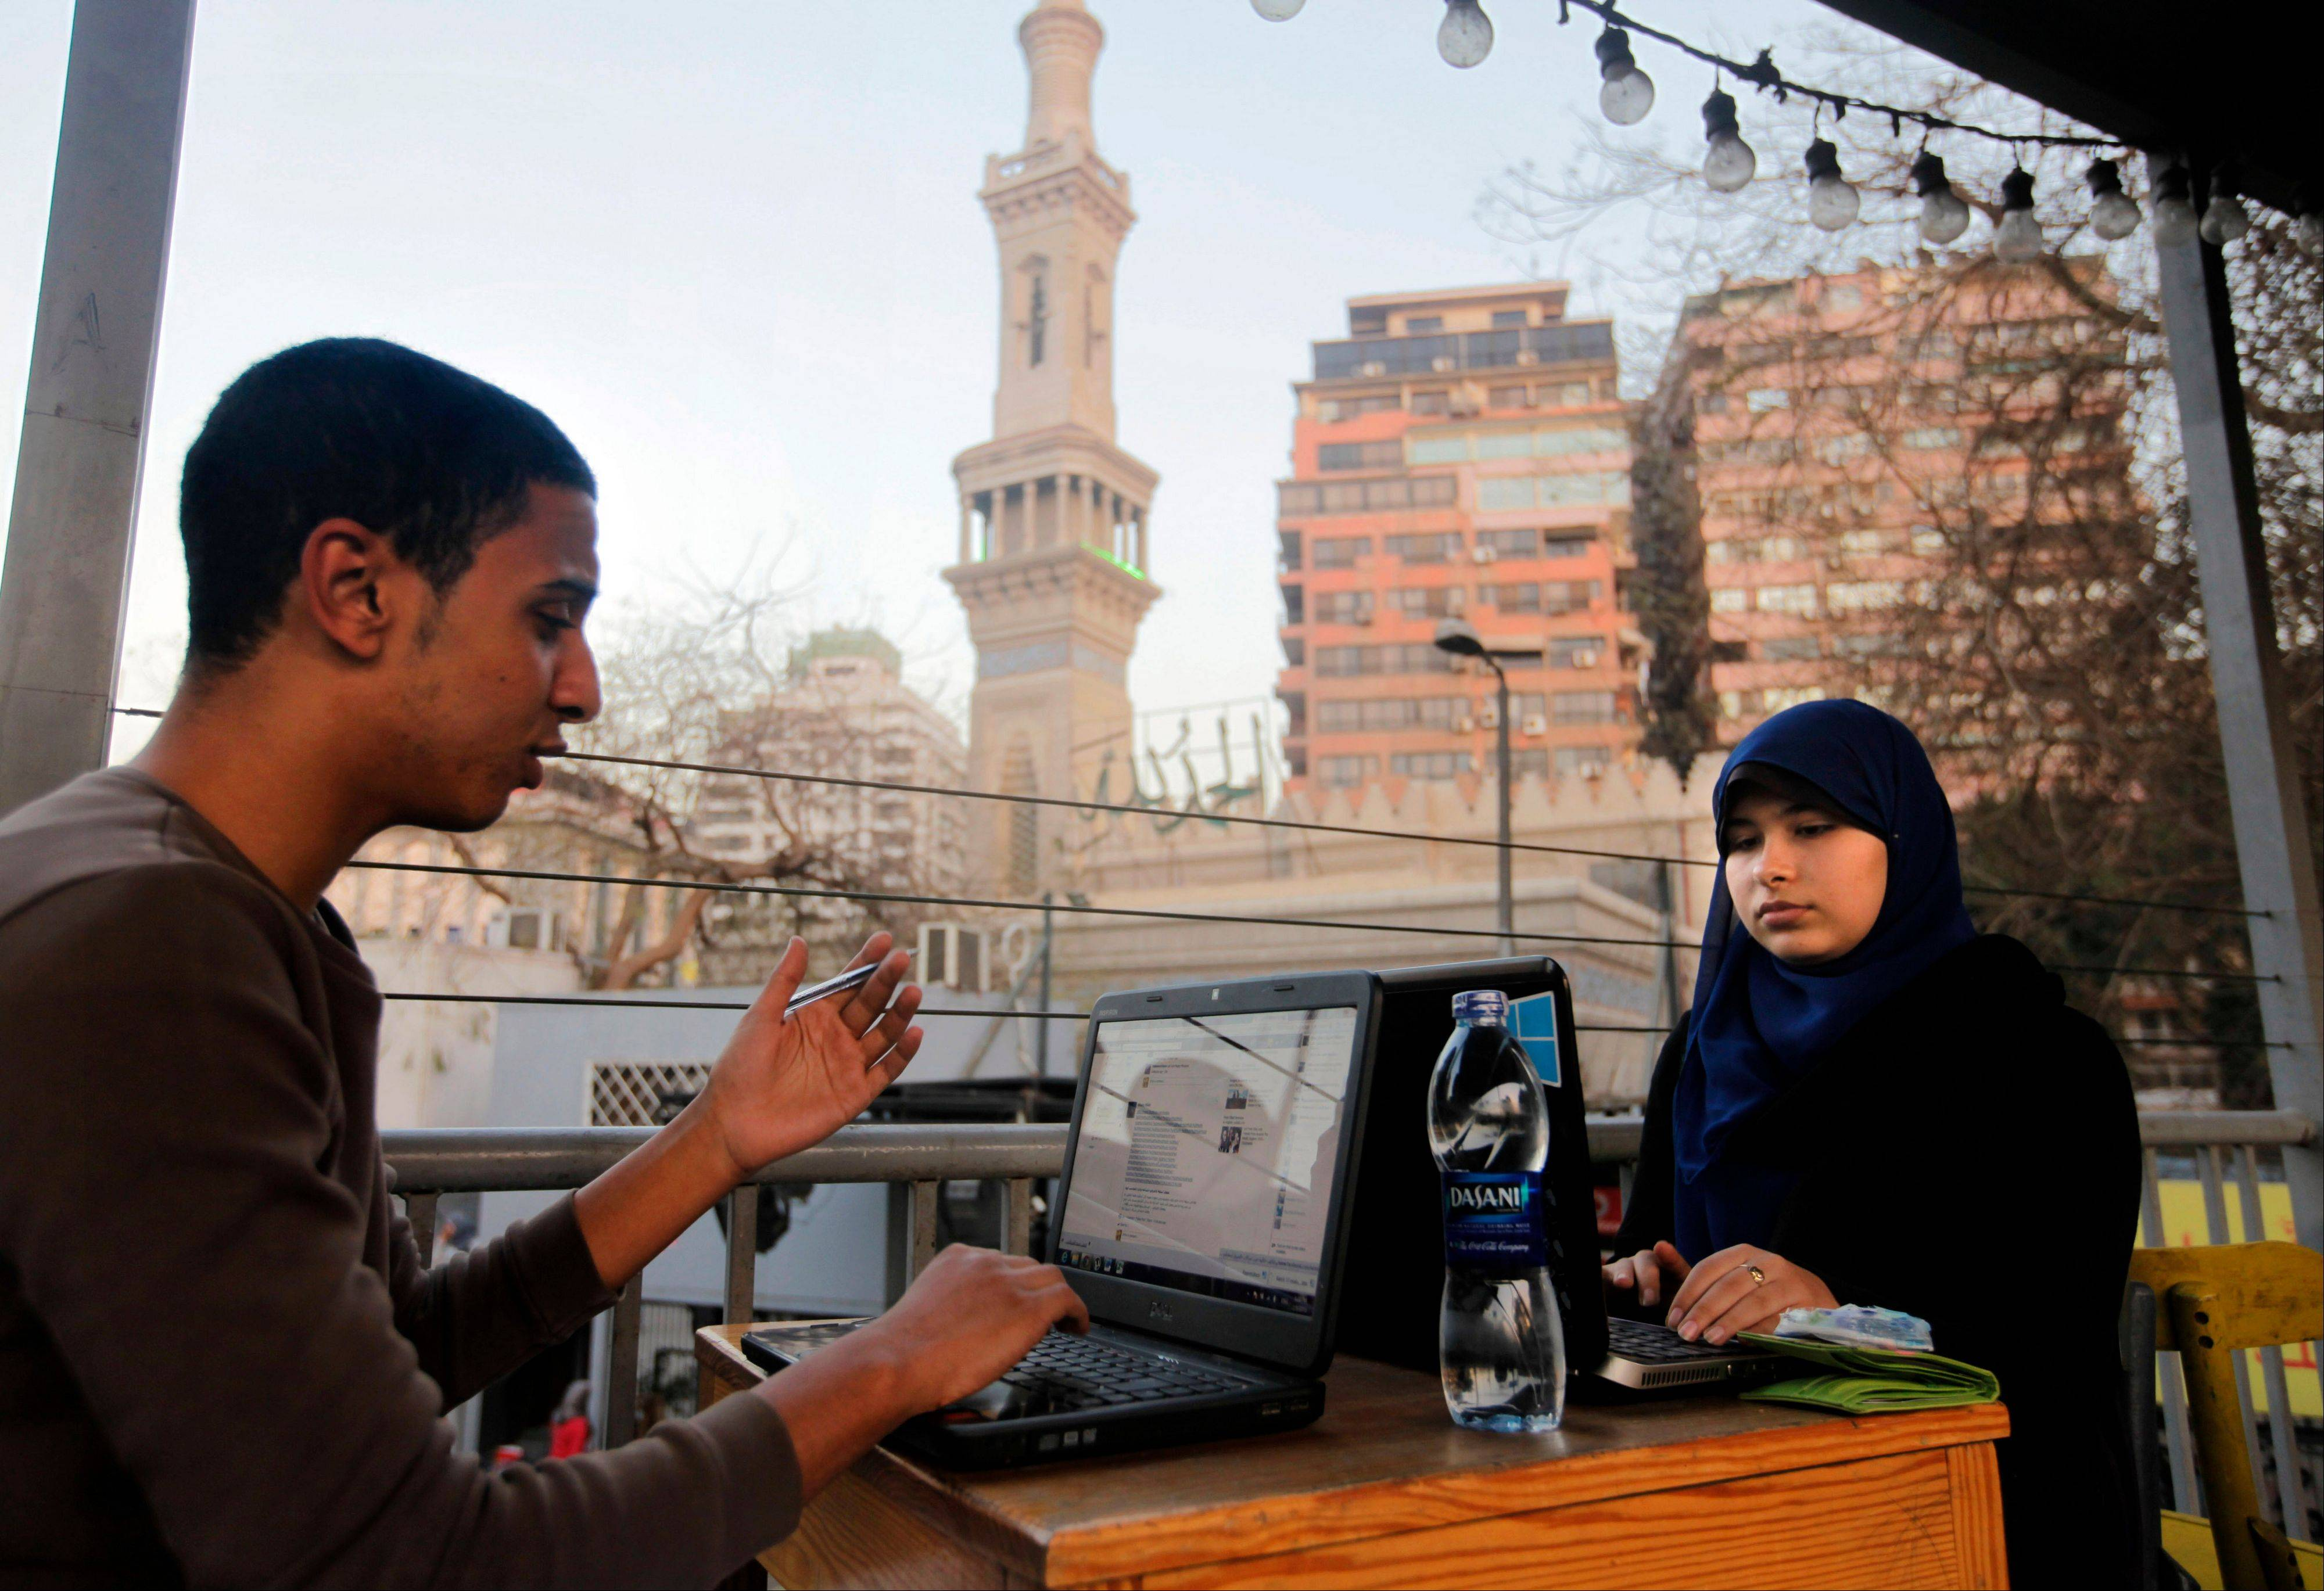 Egyptians log on to the Internet at a community center in front of a mosque in Cairo, Egypt, Saturday. A Cairo court on Saturday ordered the government to block access to the video-sharing website YouTube for 30 days for carrying an anti-Islam film that caused deadly riots across the world.